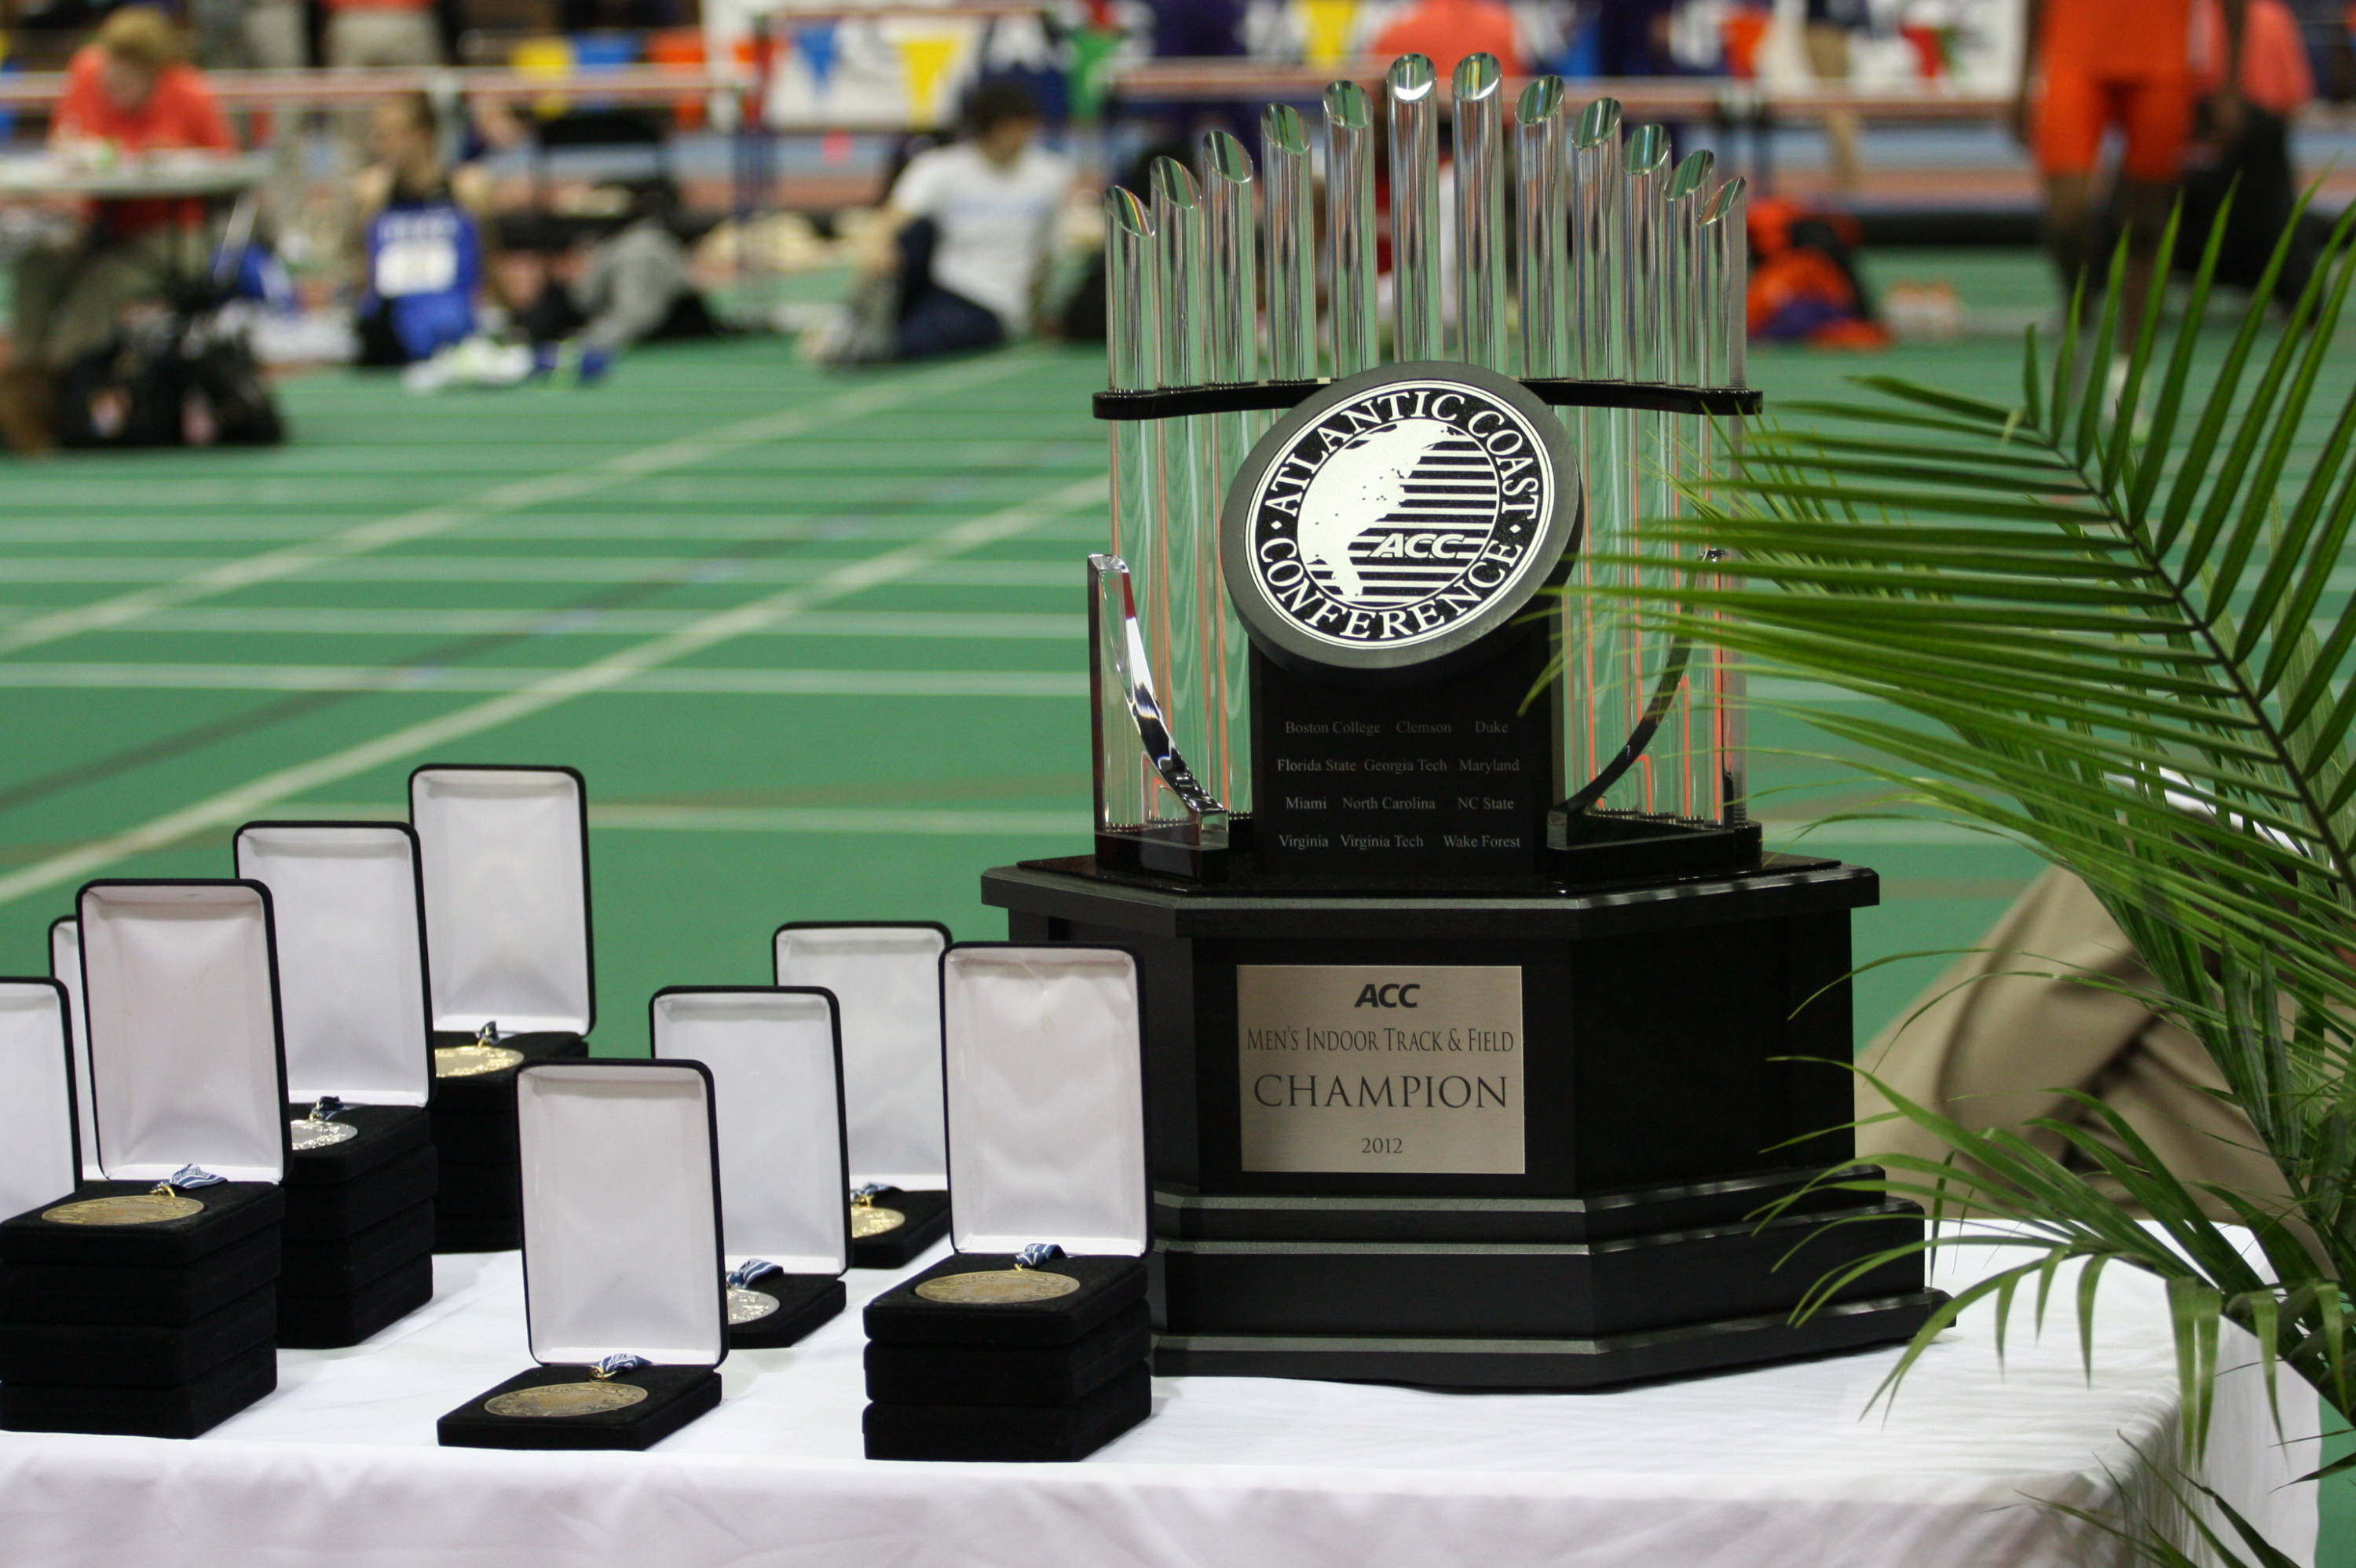 ACC Championship hardware is on the line. Go 'Noles!